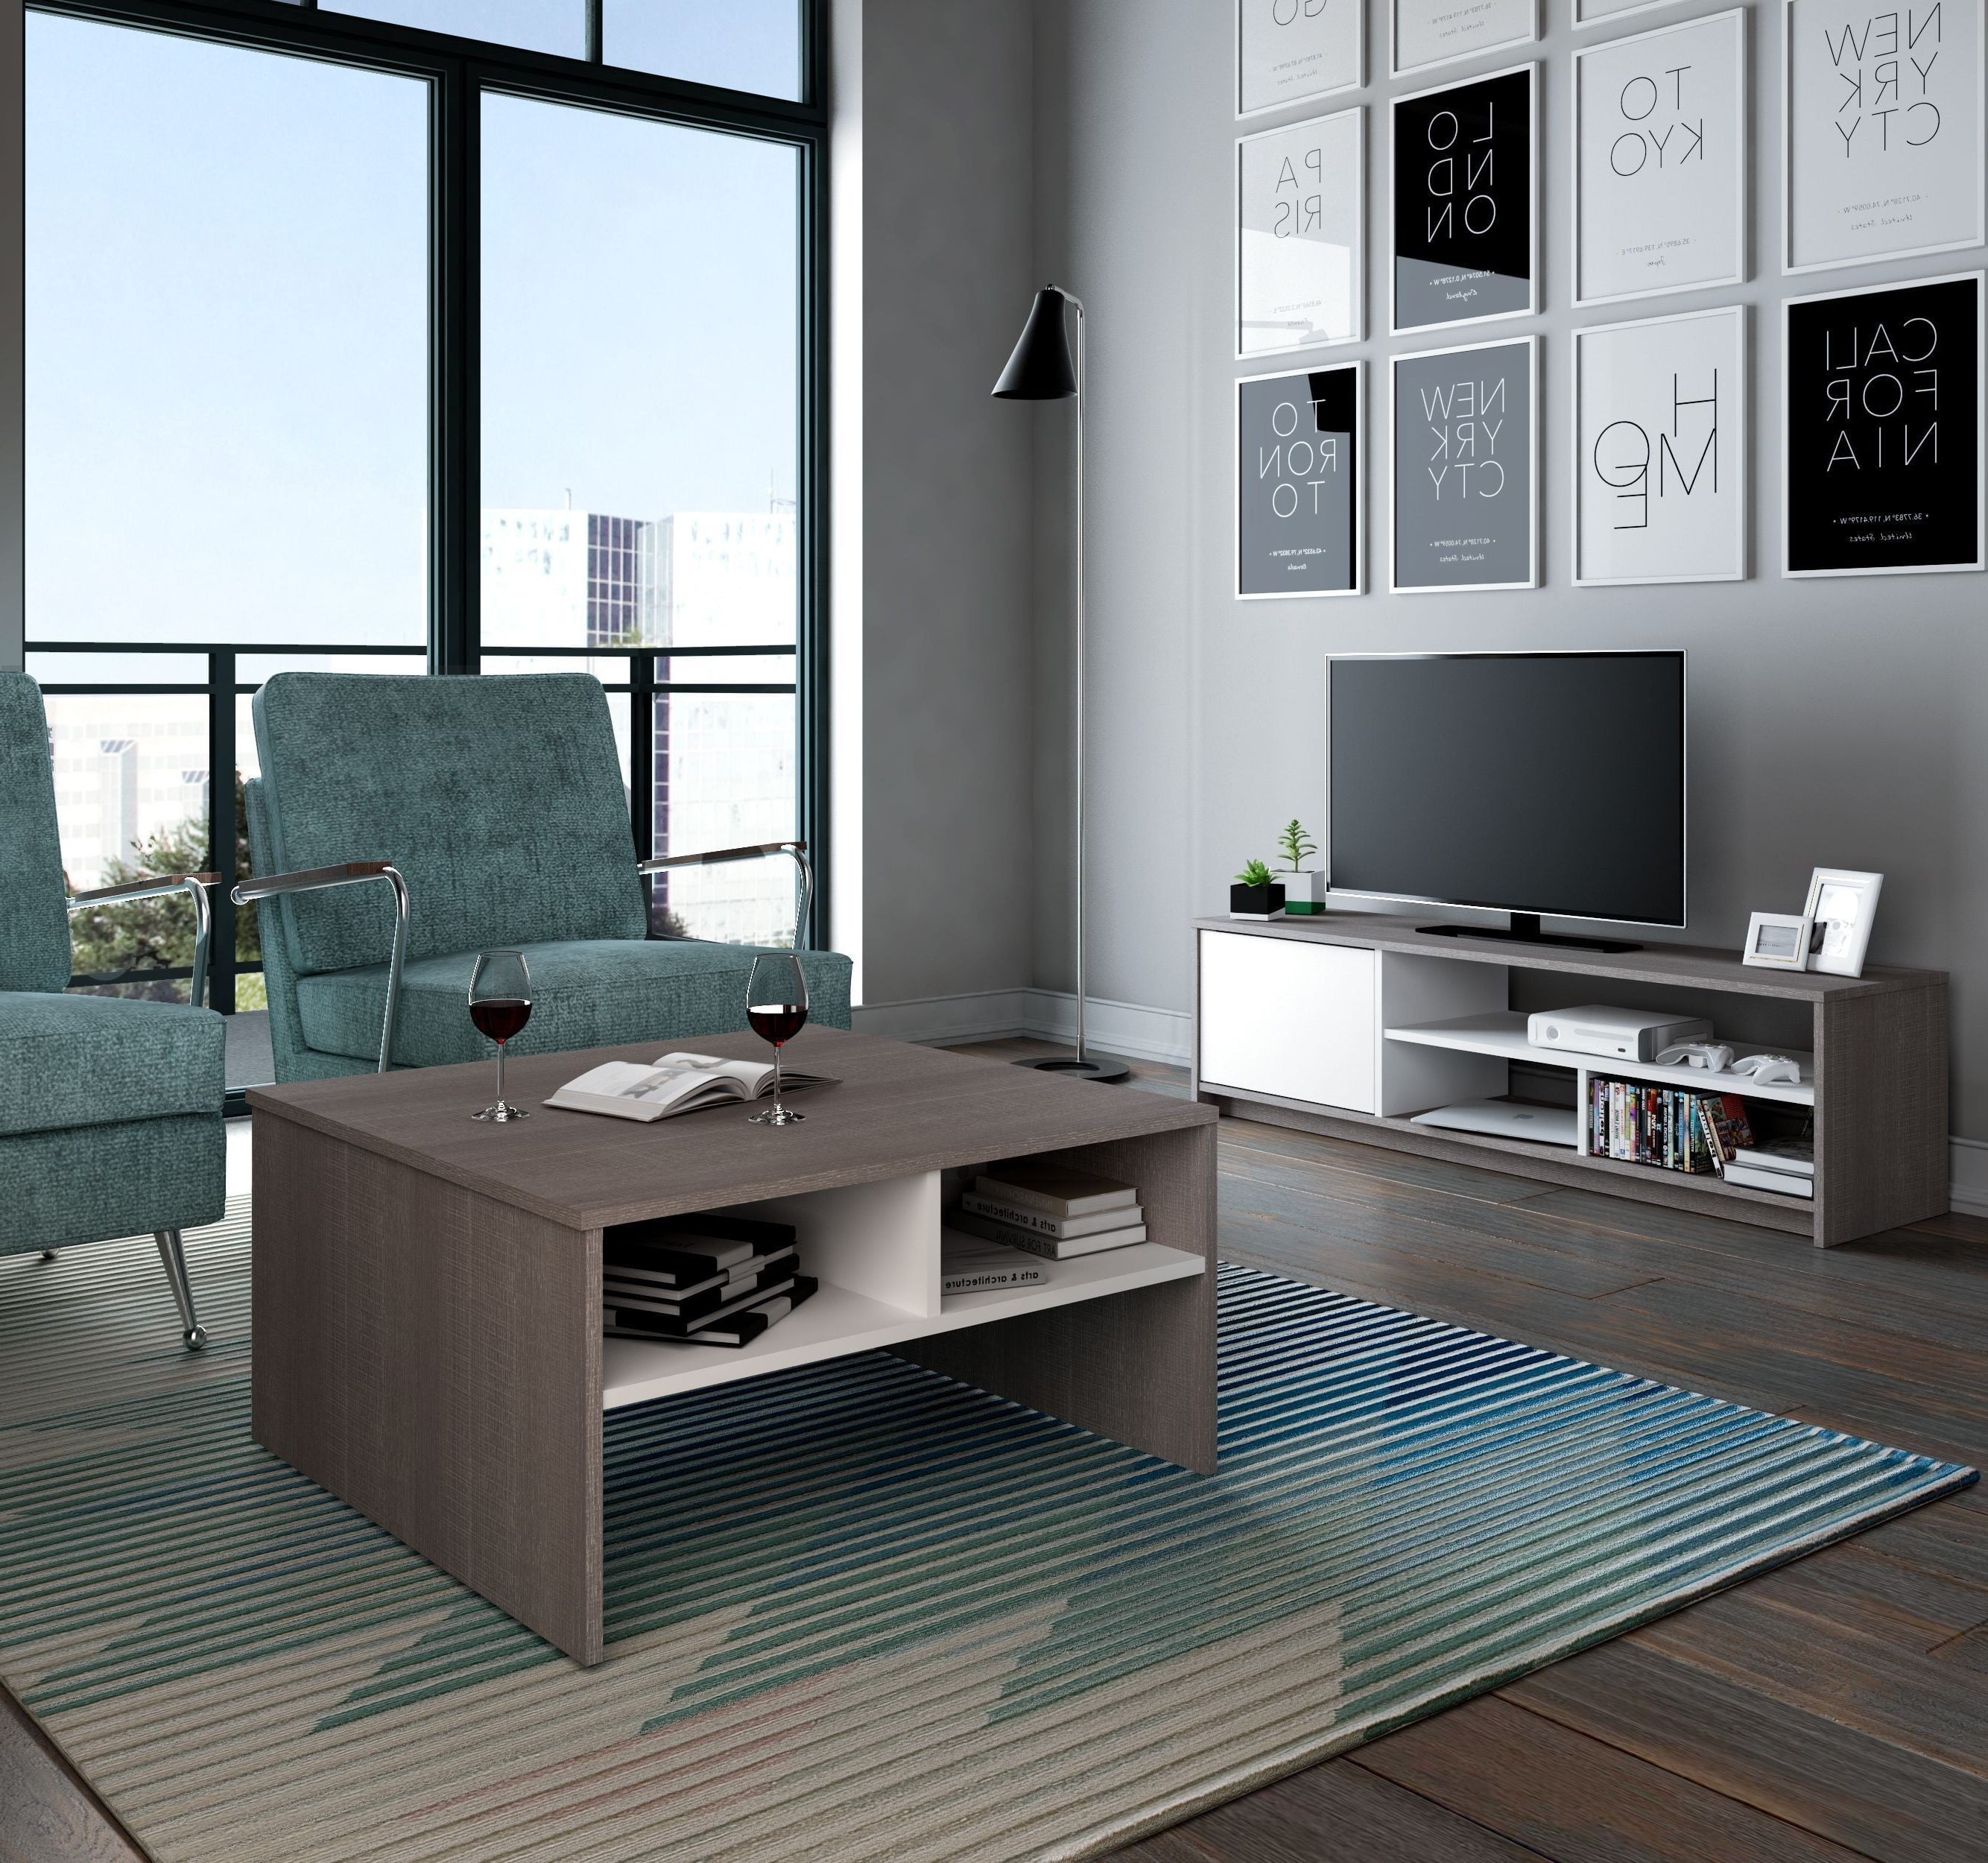 Coffee Tables And Tv Stands Sets Intended For Most Up To Date Small Space Bark Gray And White Storage Coffee Table With Tv Stand (Gallery 12 of 20)